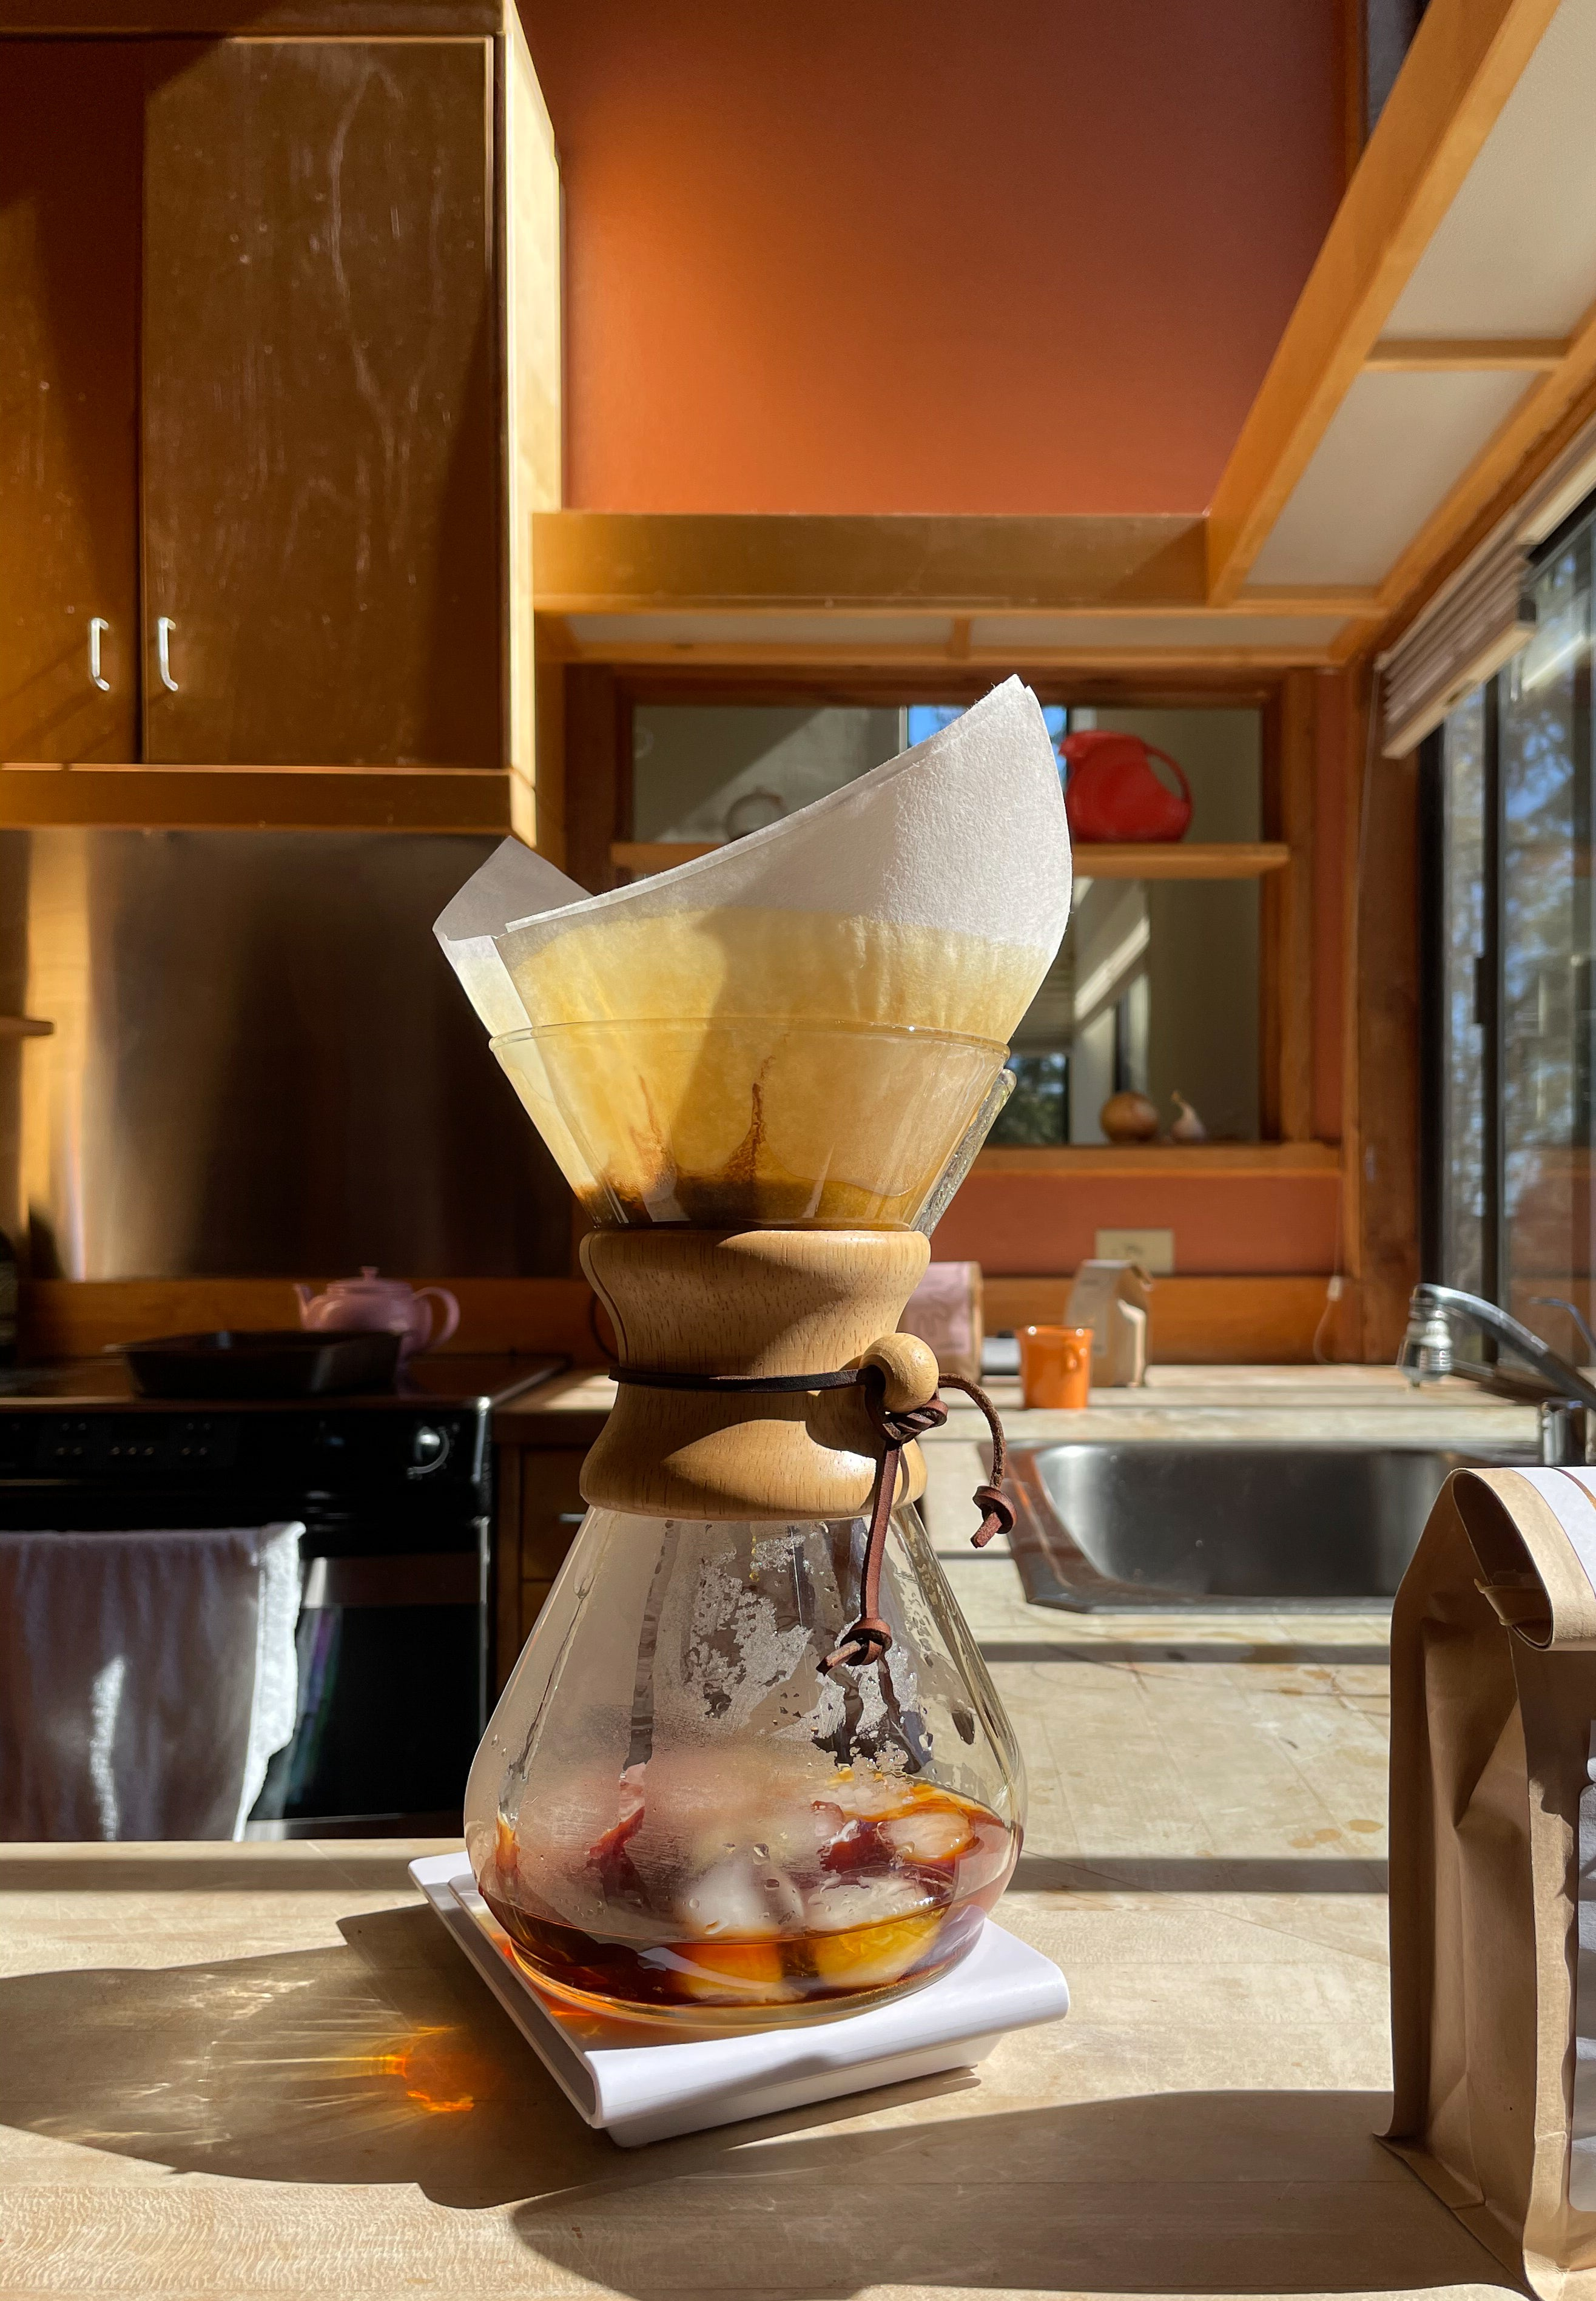 Iced coffee in Chemex at a house in Sea Ranch, CA